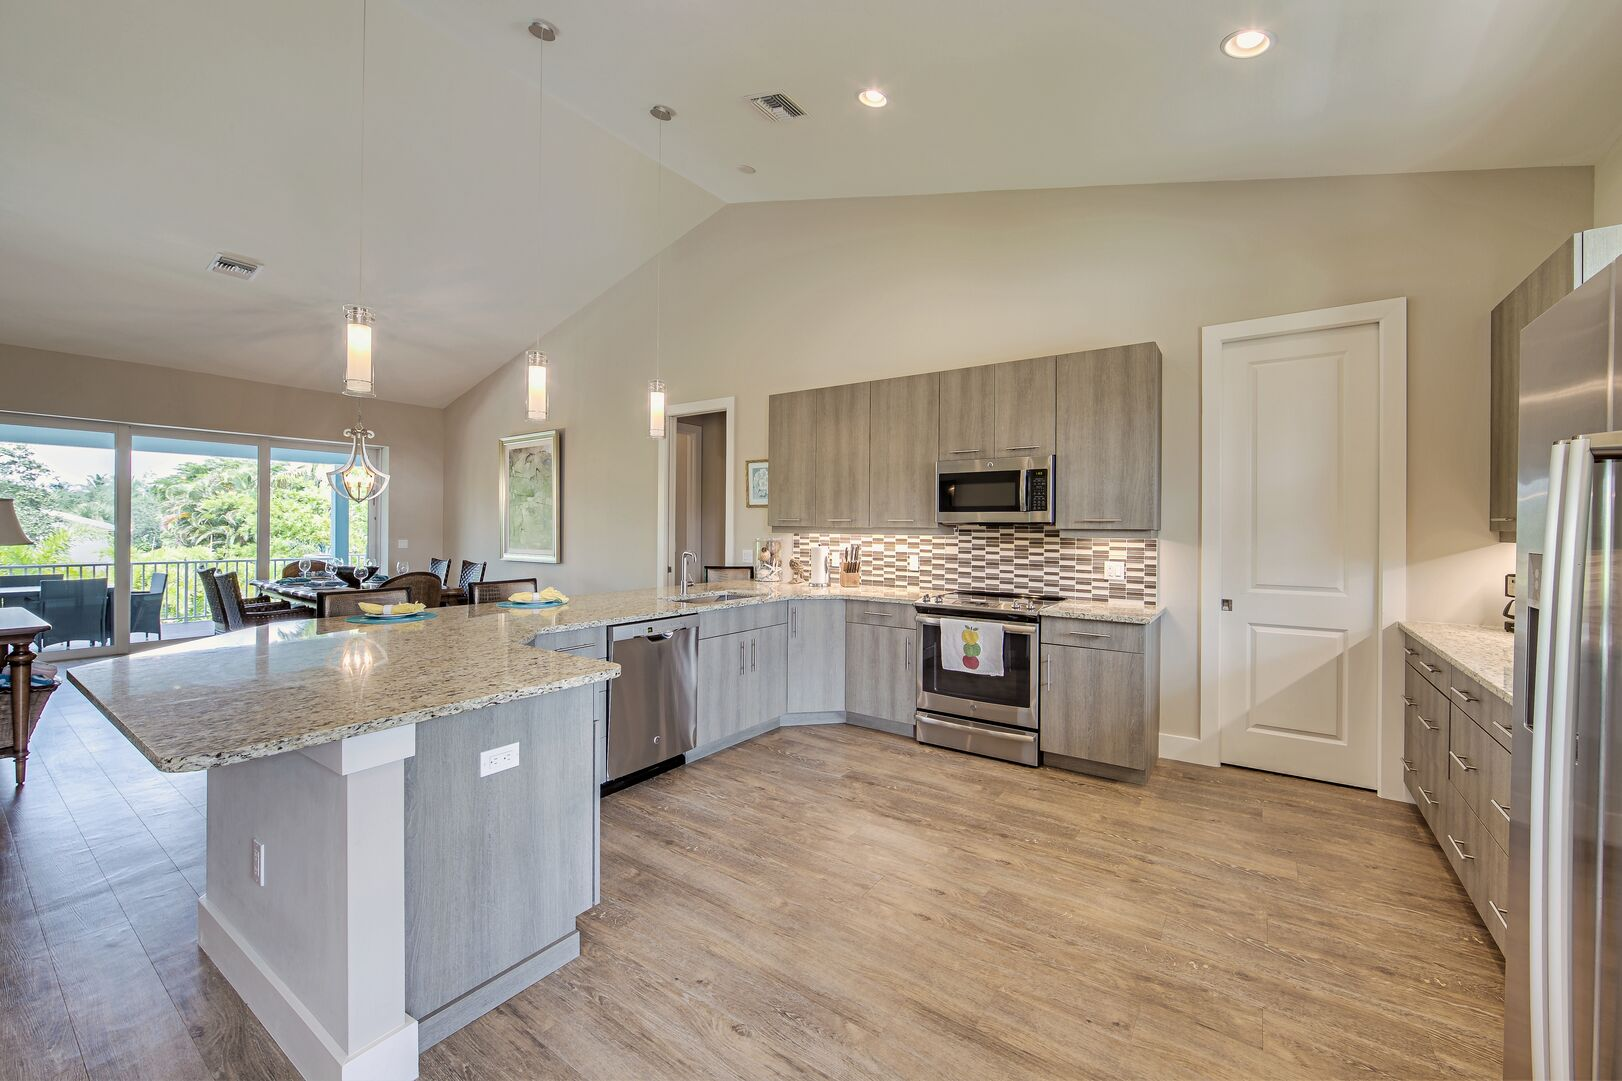 kitchen area with island and oven